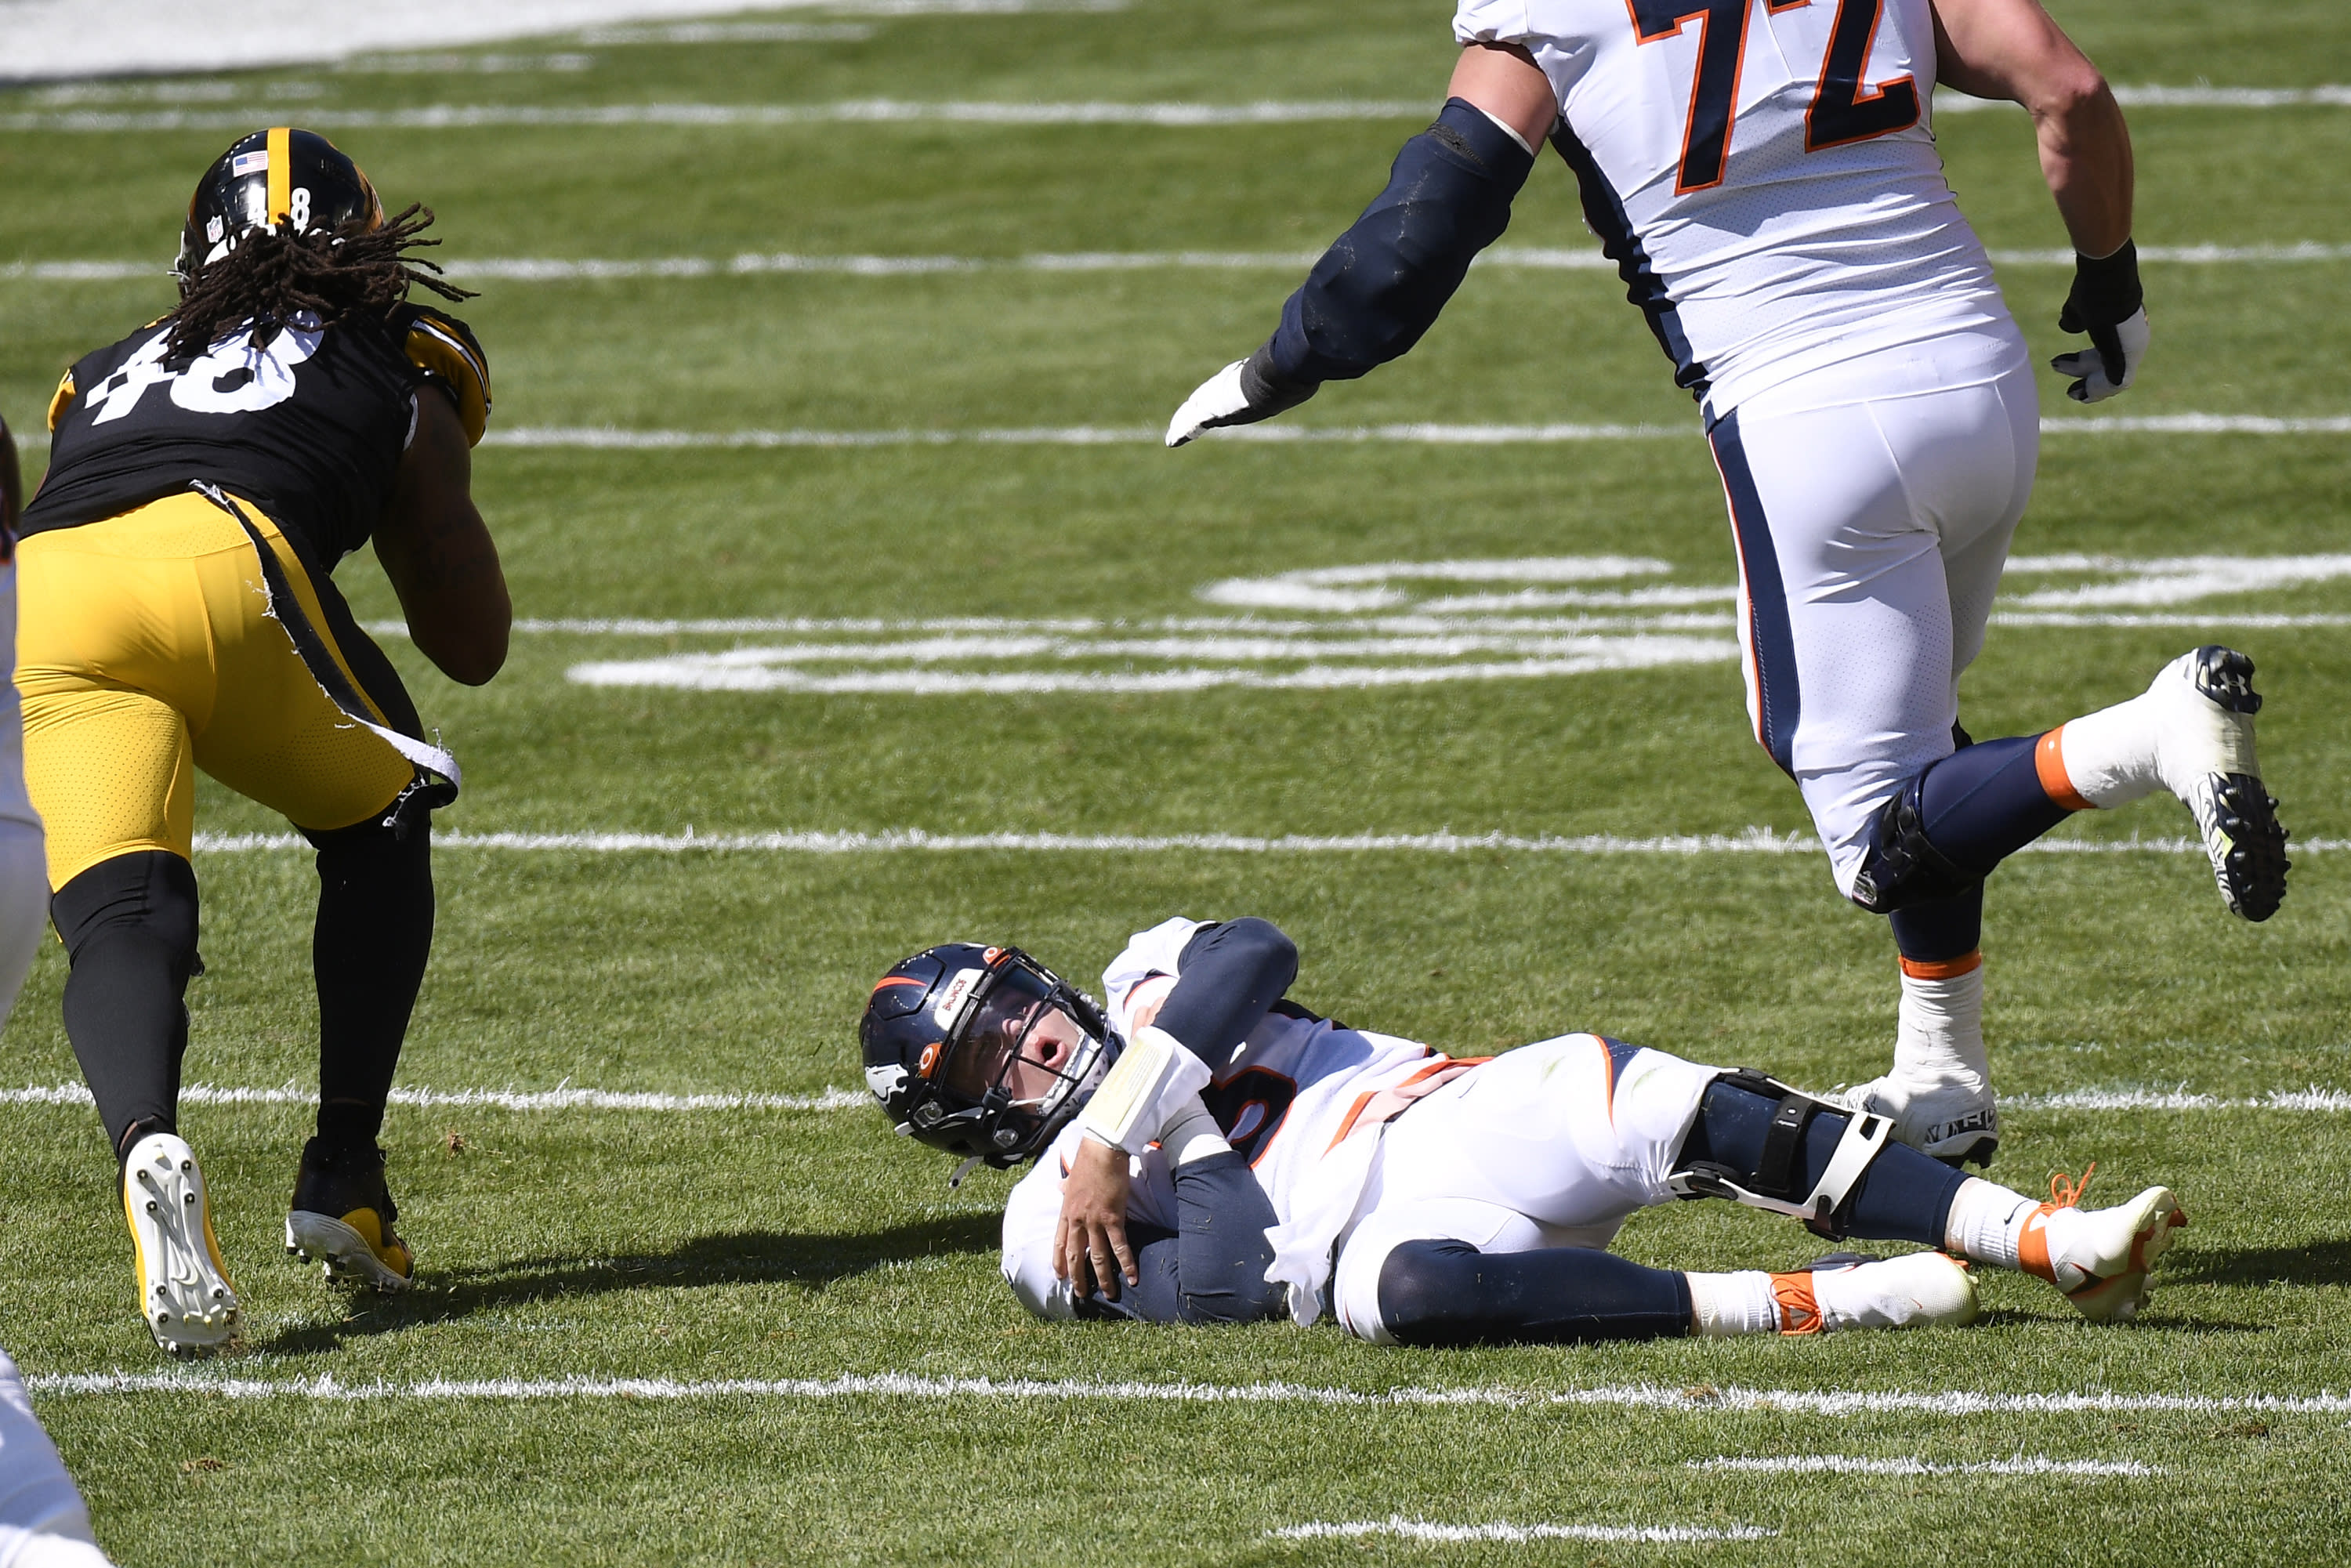 Denver Broncos quarterback Drew Lock (3) holds his arm after being injured while fumbling the ball during the first half of an NFL football game against the Pittsburgh Steelers, Sunday, Sept. 20, 2020, in Pittsburgh. (AP Photo/Keith Srakocic)